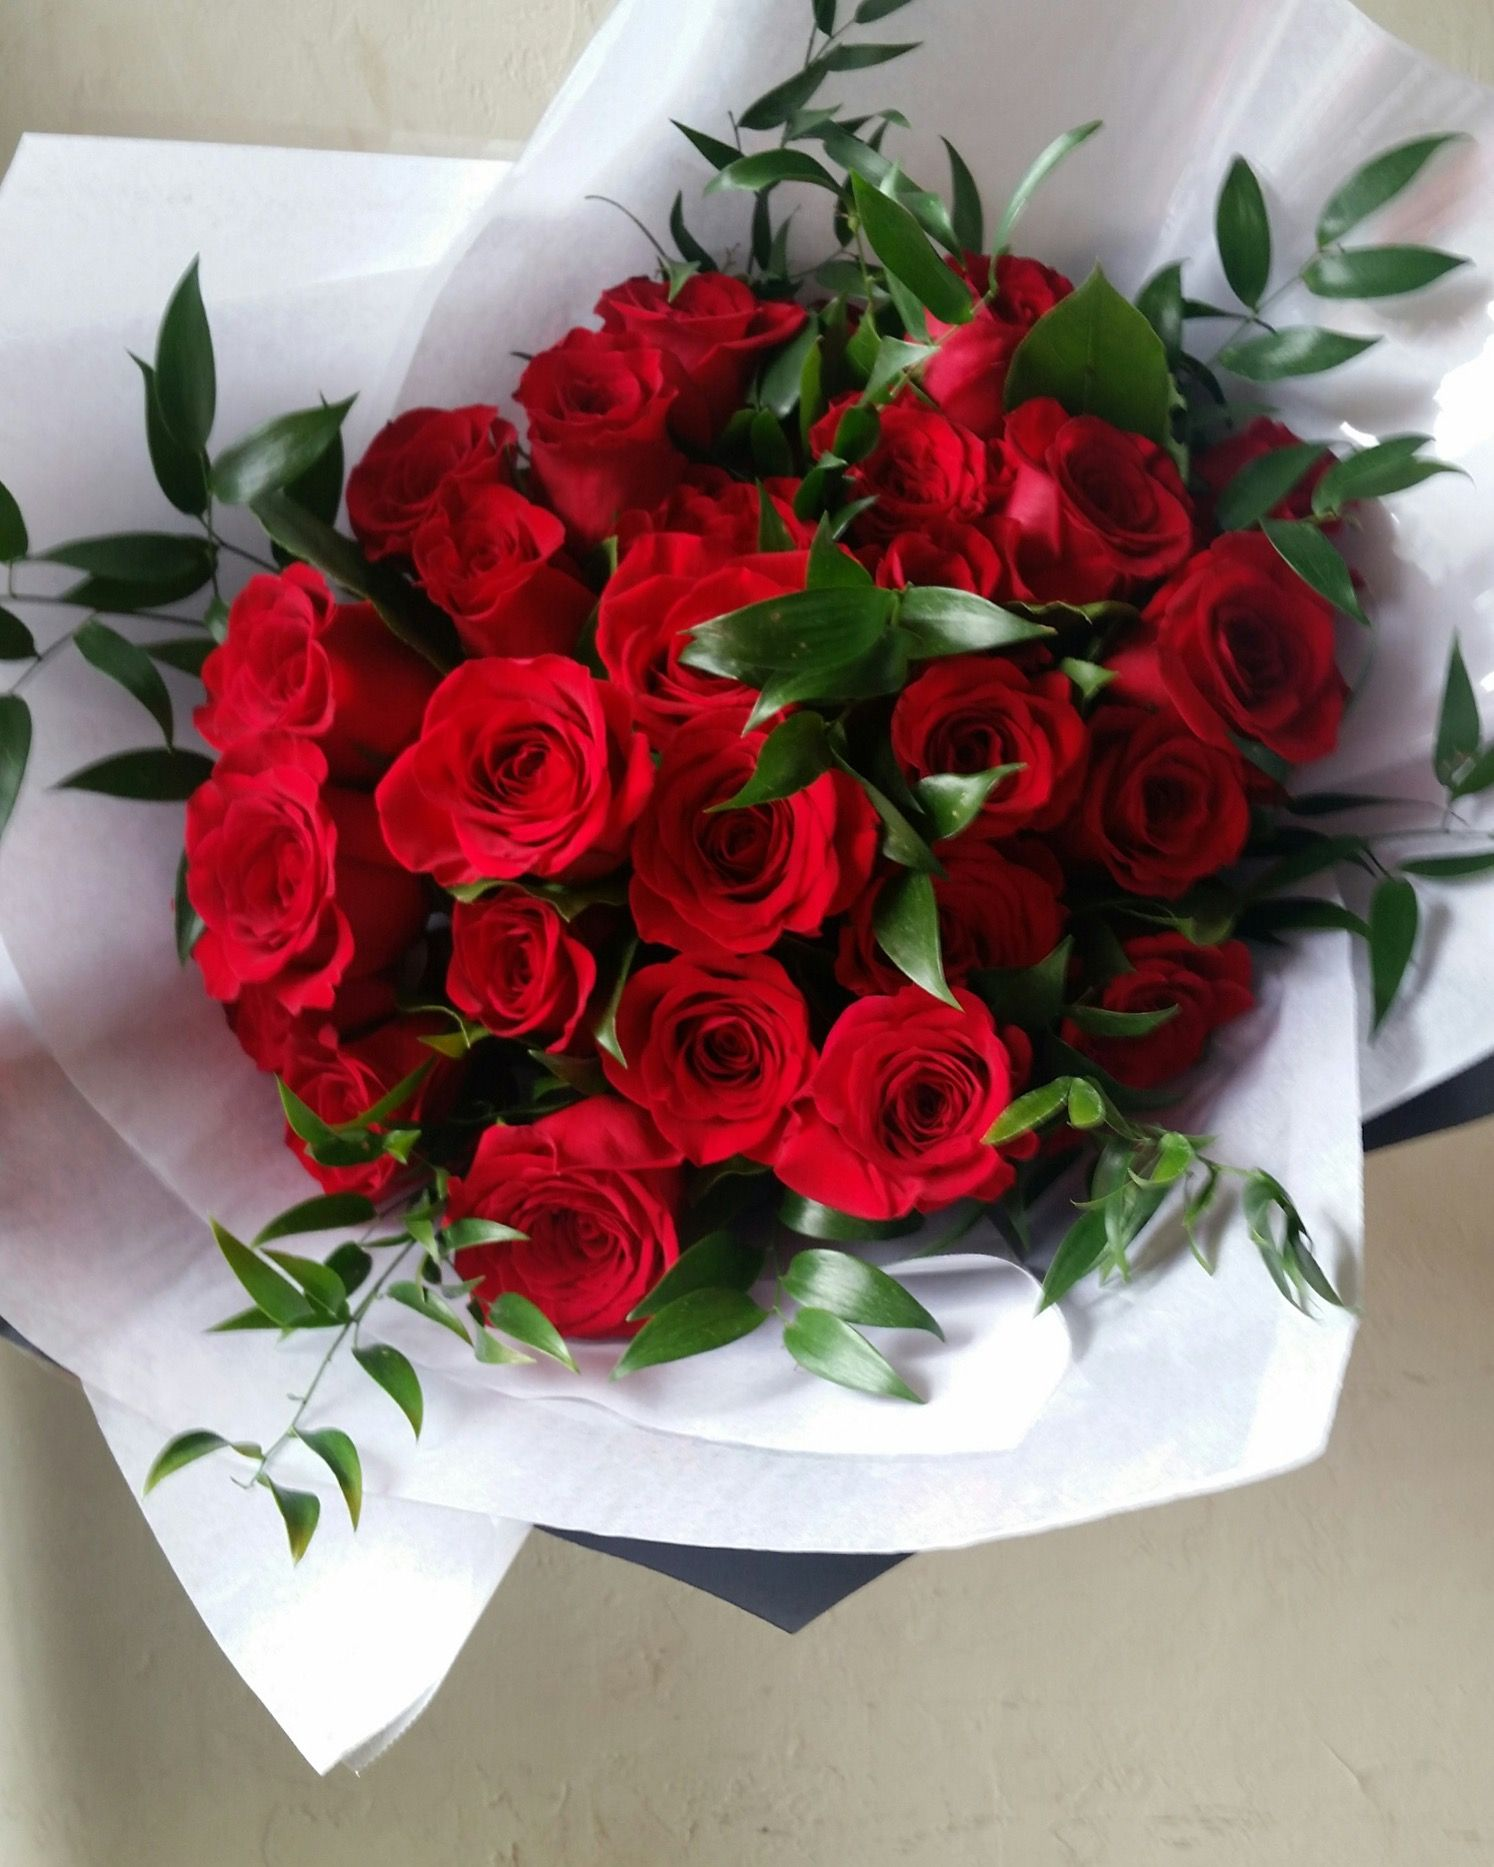 Pin By Chrow On Botany Floral Studio Luxury Flower Bouquets Red Rose Bouquet Ordering Wedding Flowers Online